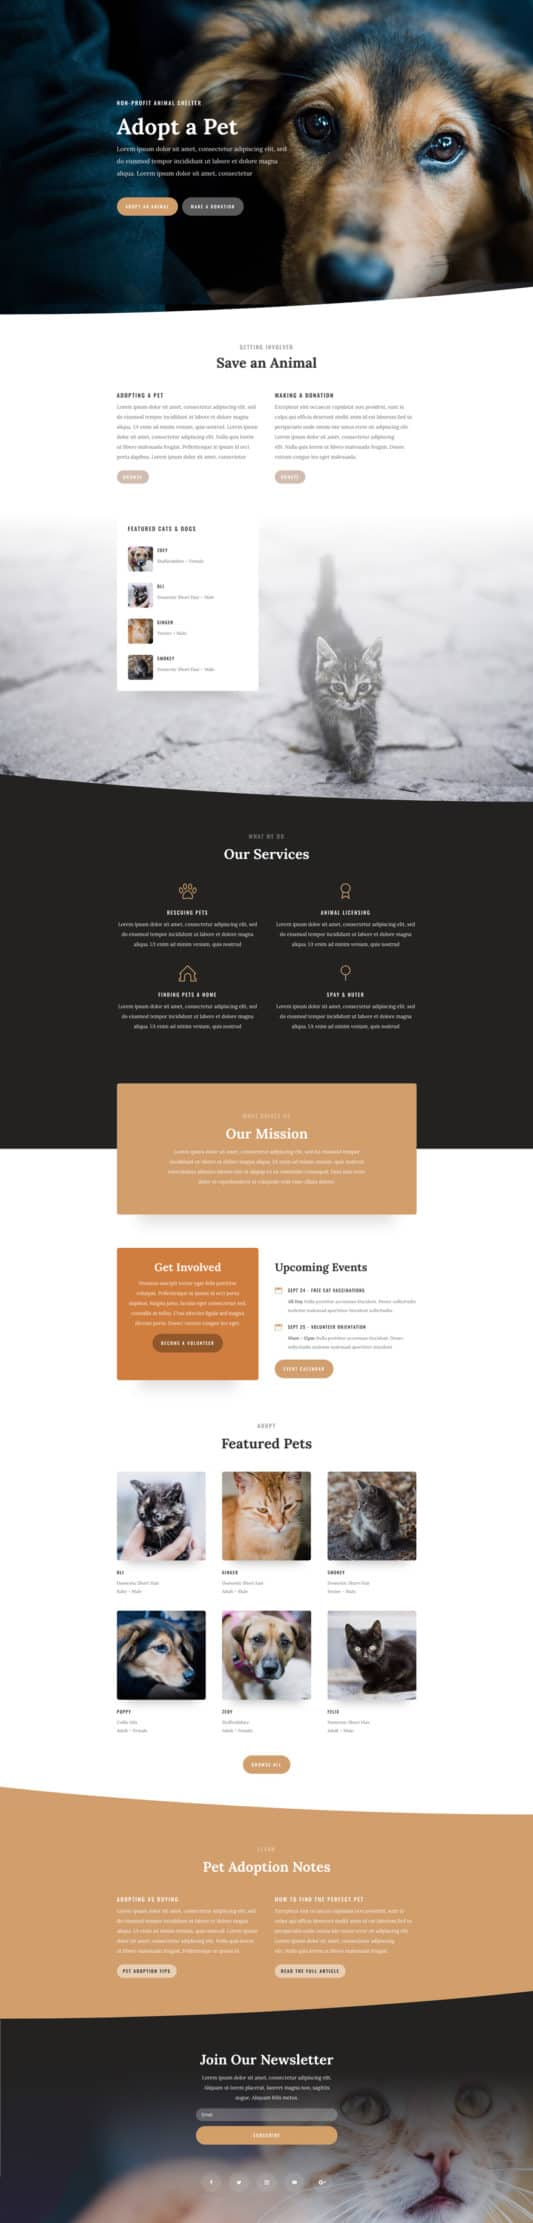 The Animal Shelter Page Style: Homepage Design 1